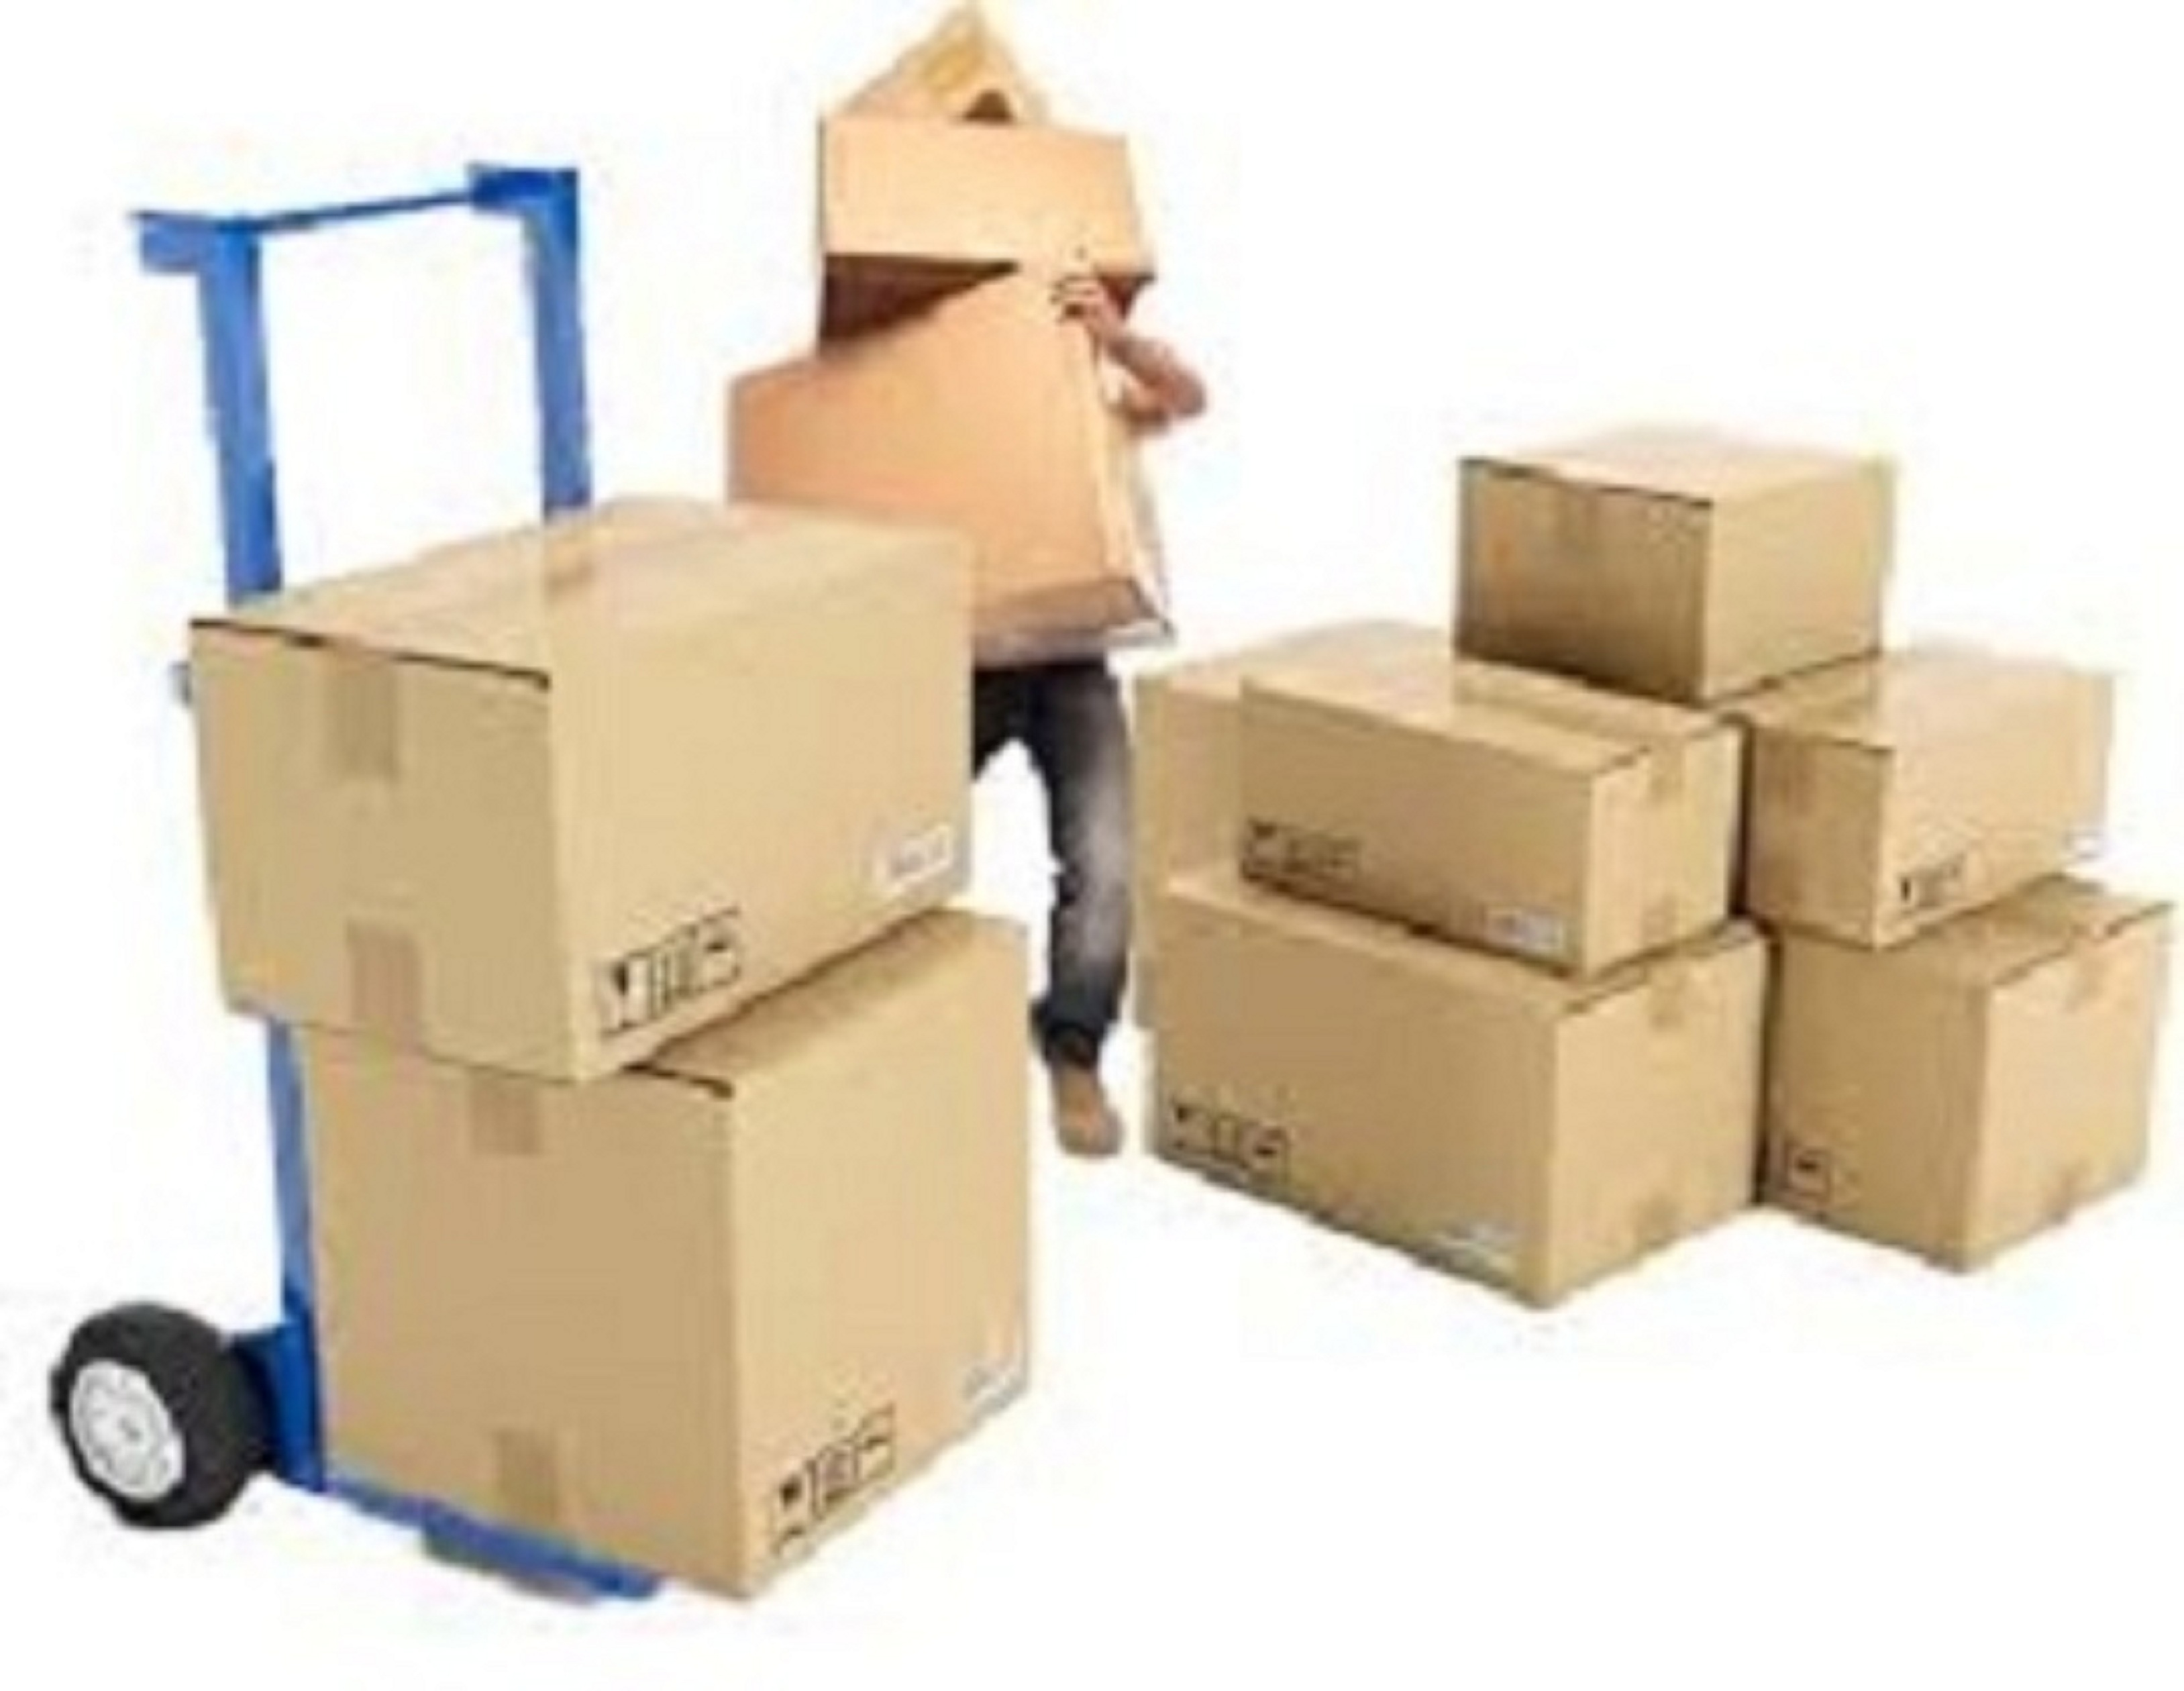 How Packers and Movers work in Gurgaon?